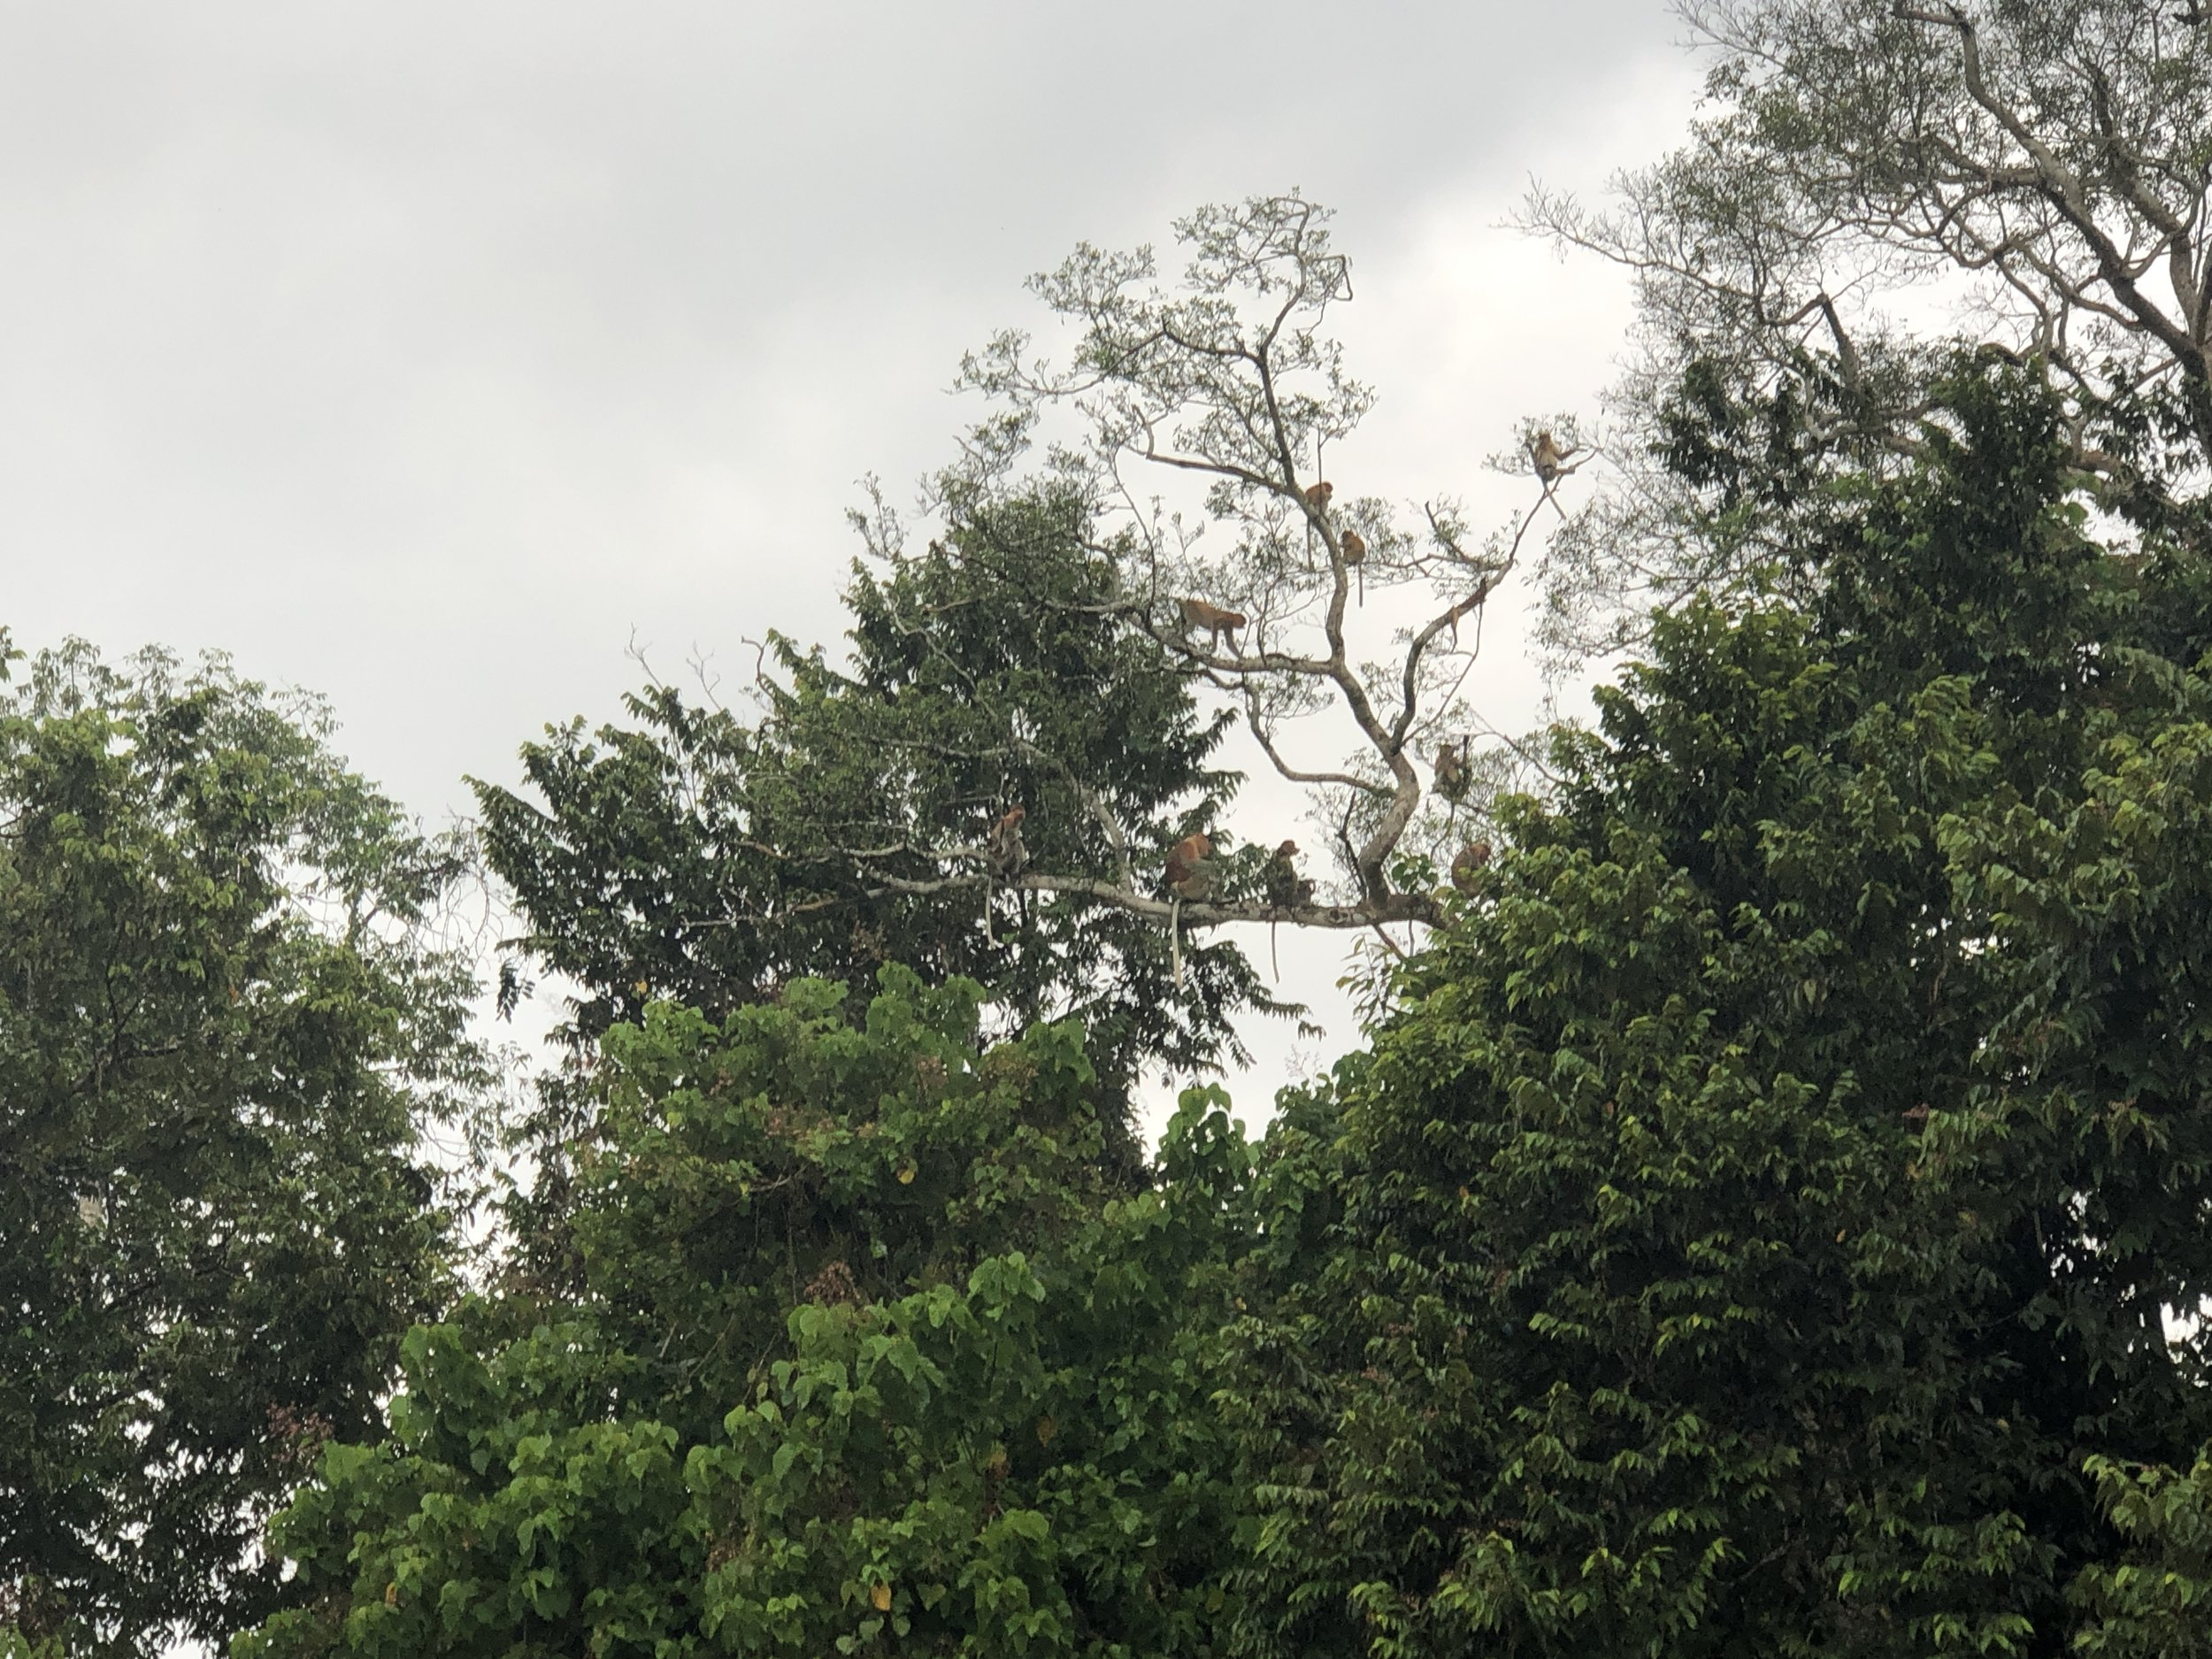 A family of proboscis monkeys in trees by the banks of the River Kinabatangan